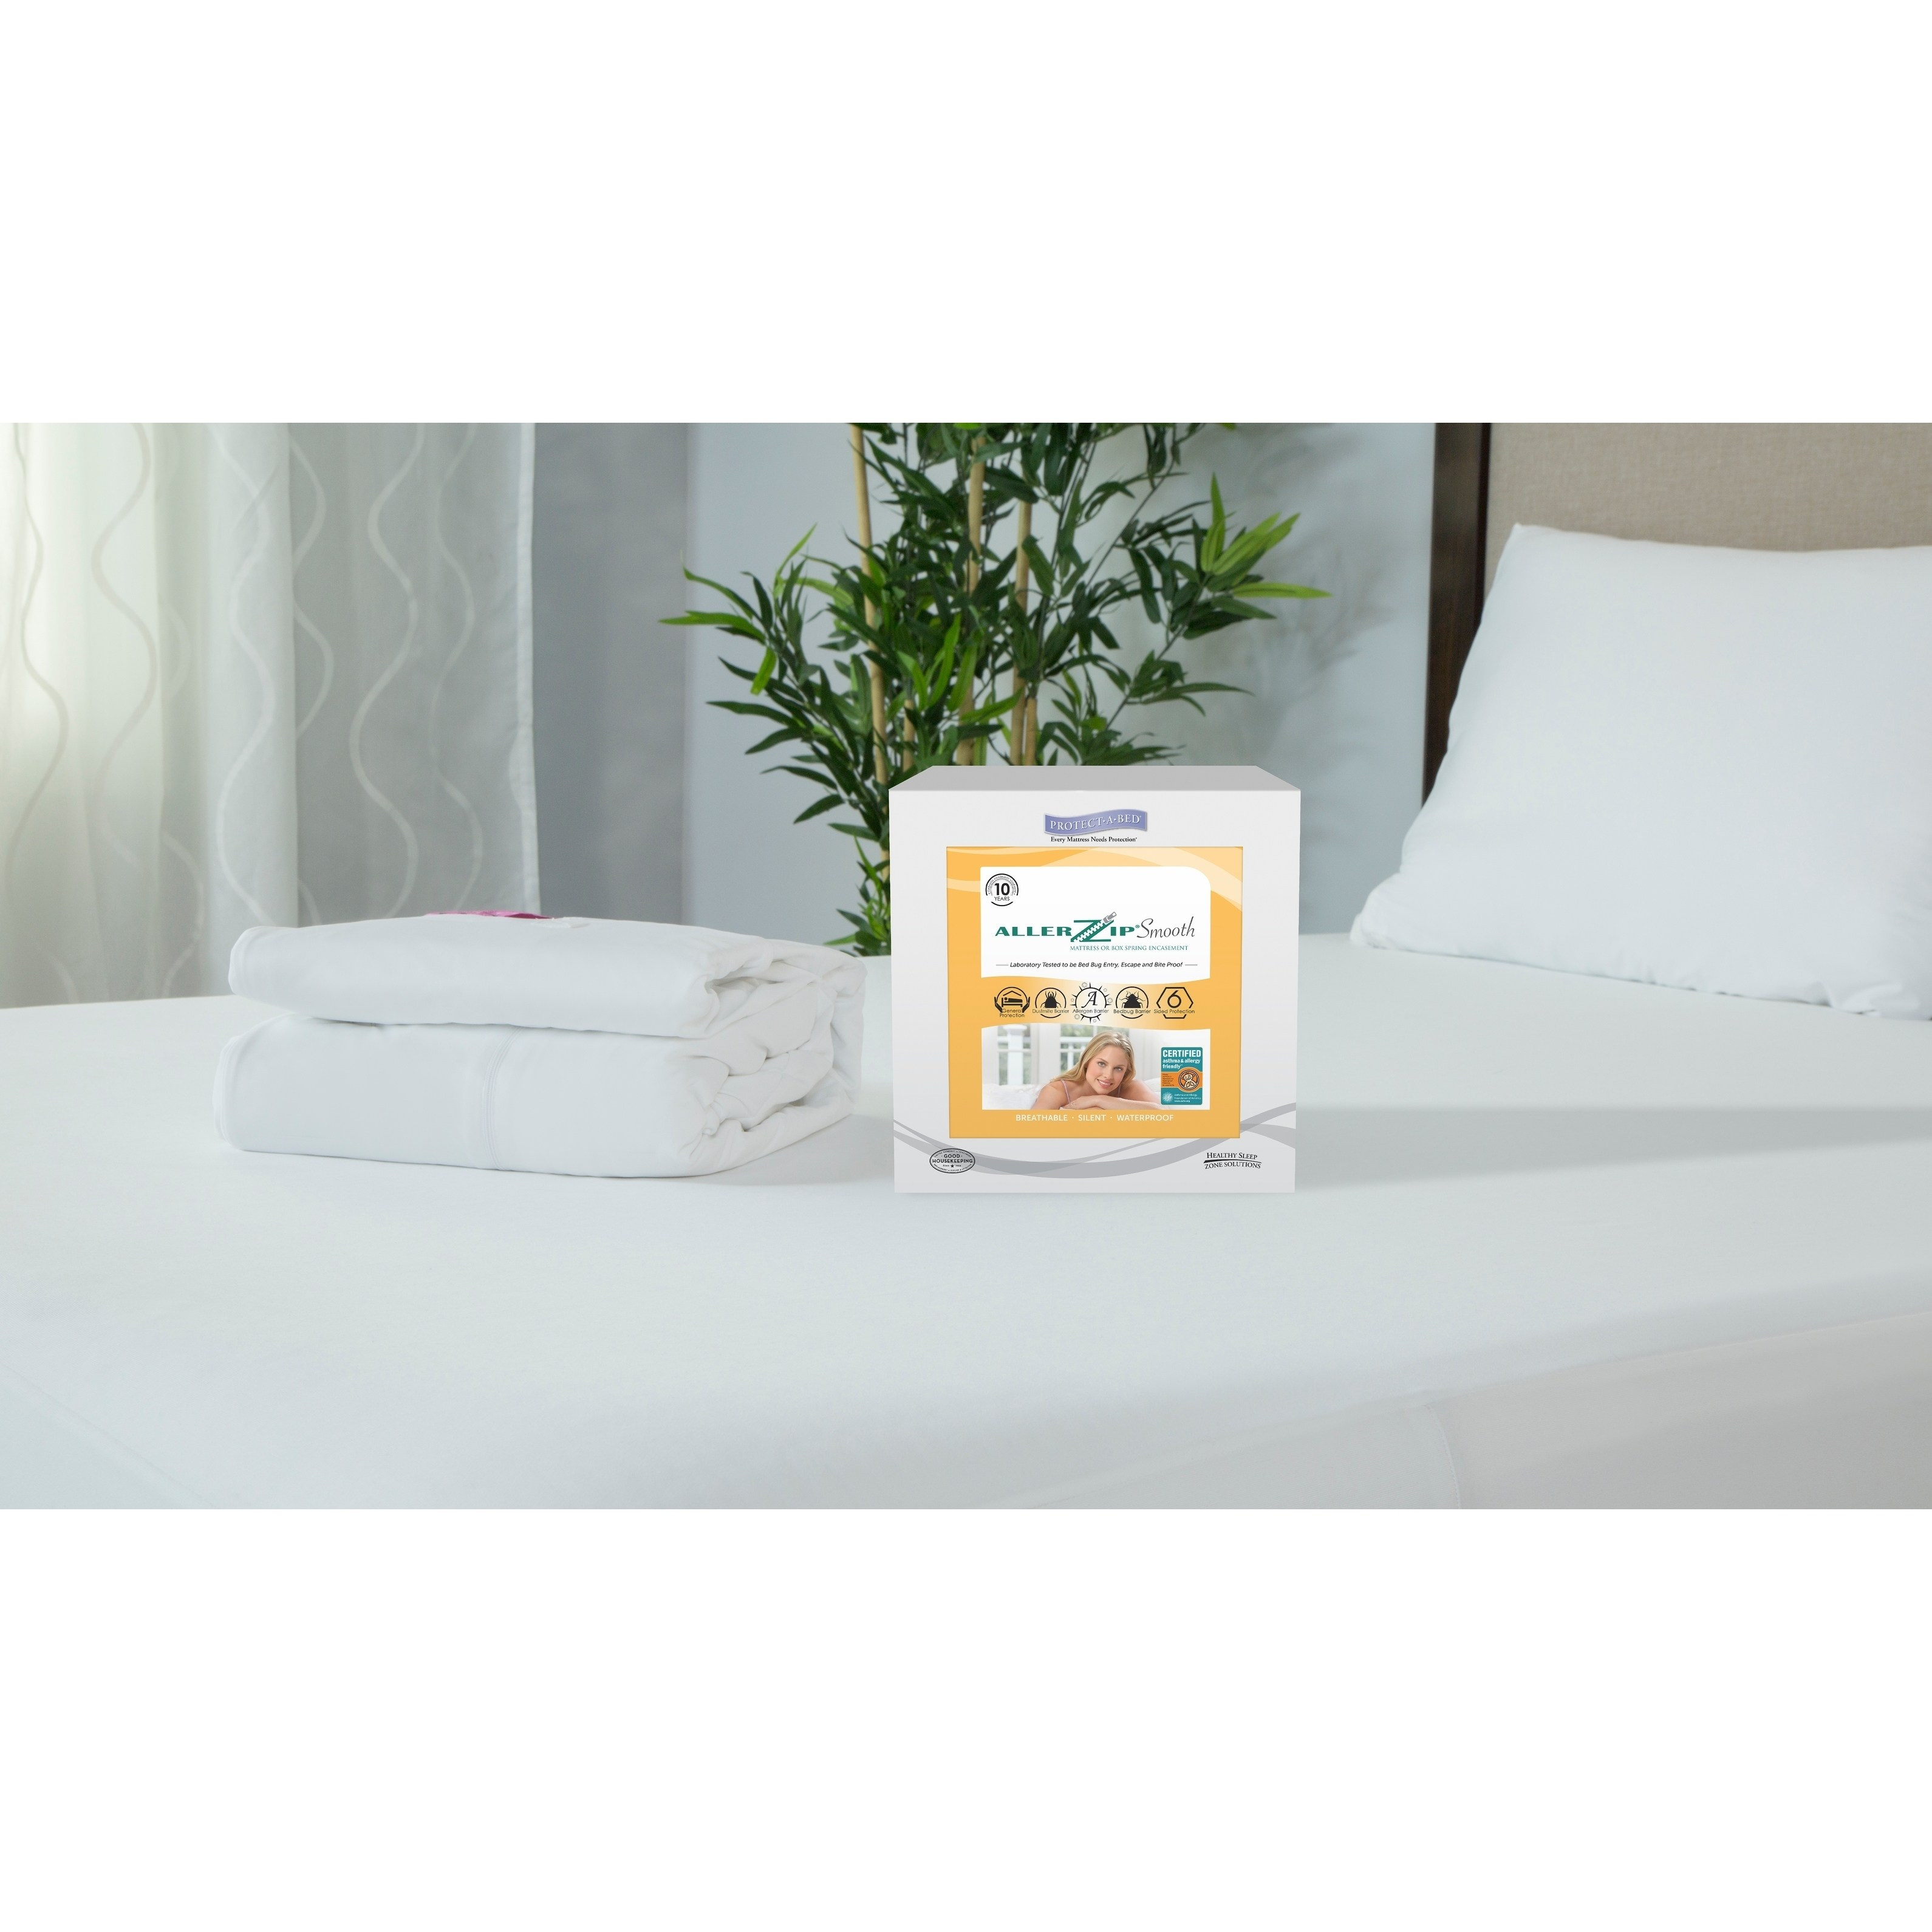 "Protect-A-Bed  ALLERZIP Smooth TWIN XL 13"" Mattress Encasement - White"